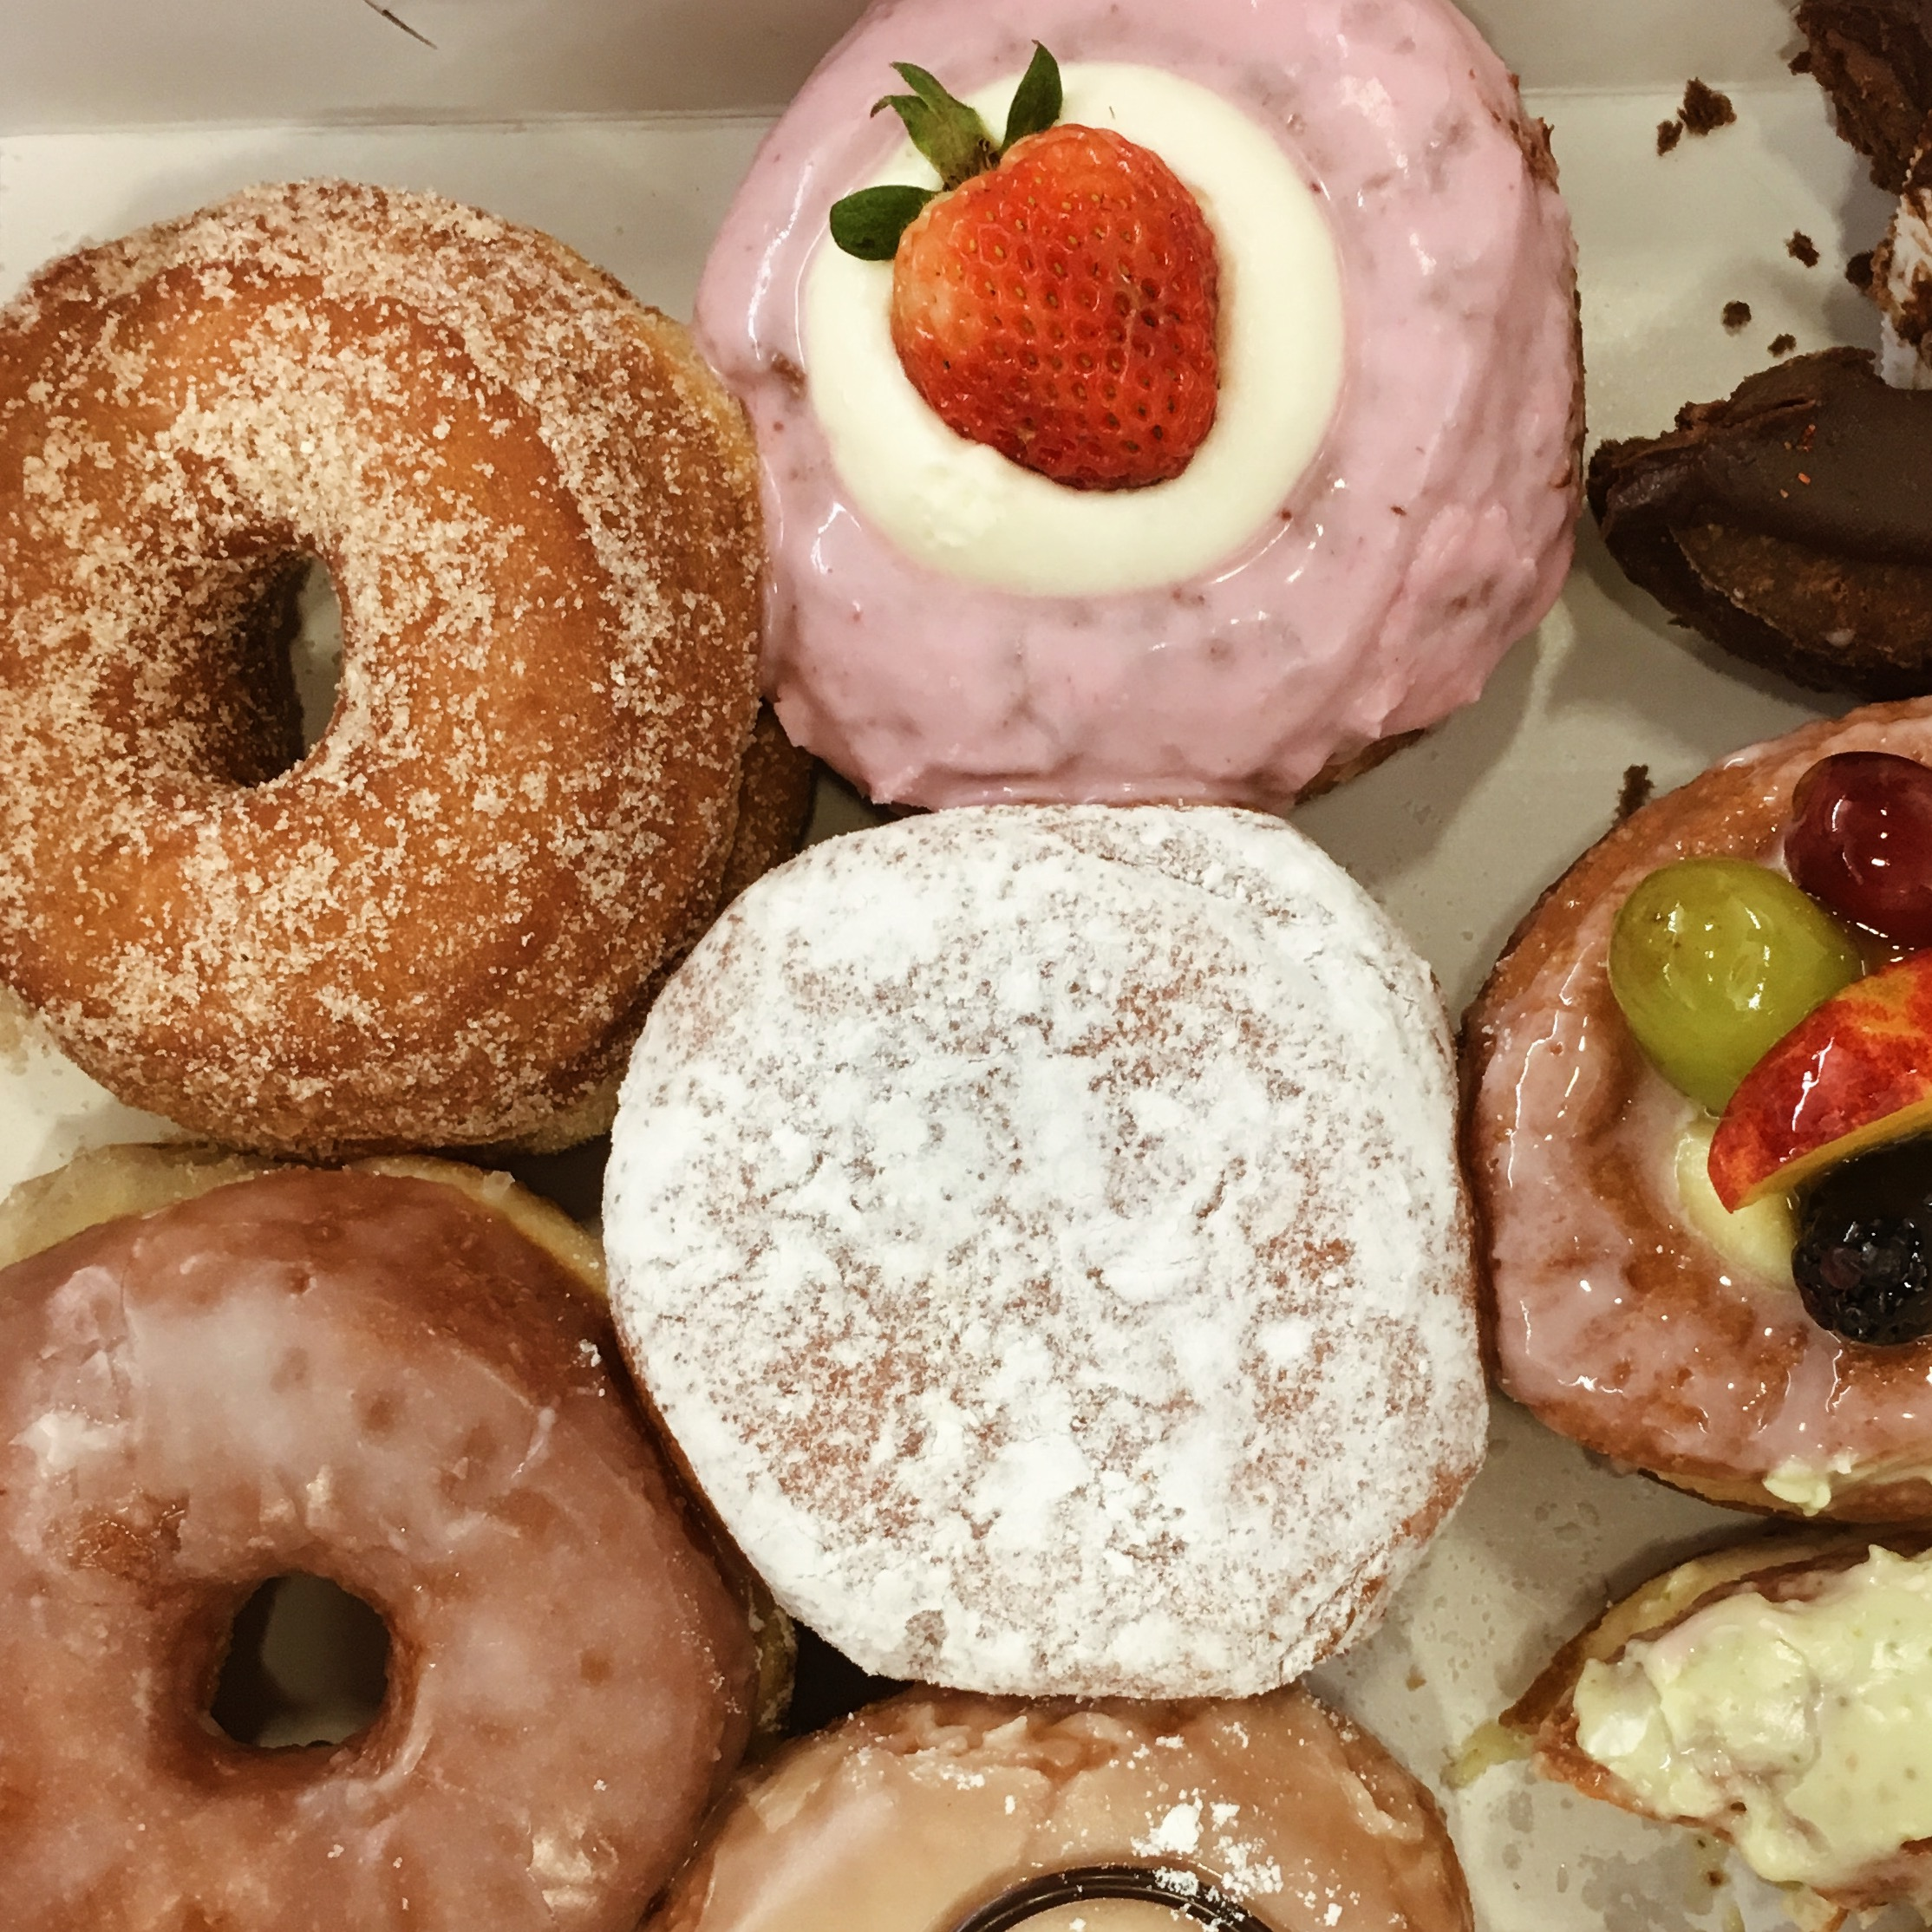 It's the last day for the marketing interns which means beautiful donuts and sharing them bite by bite in the office